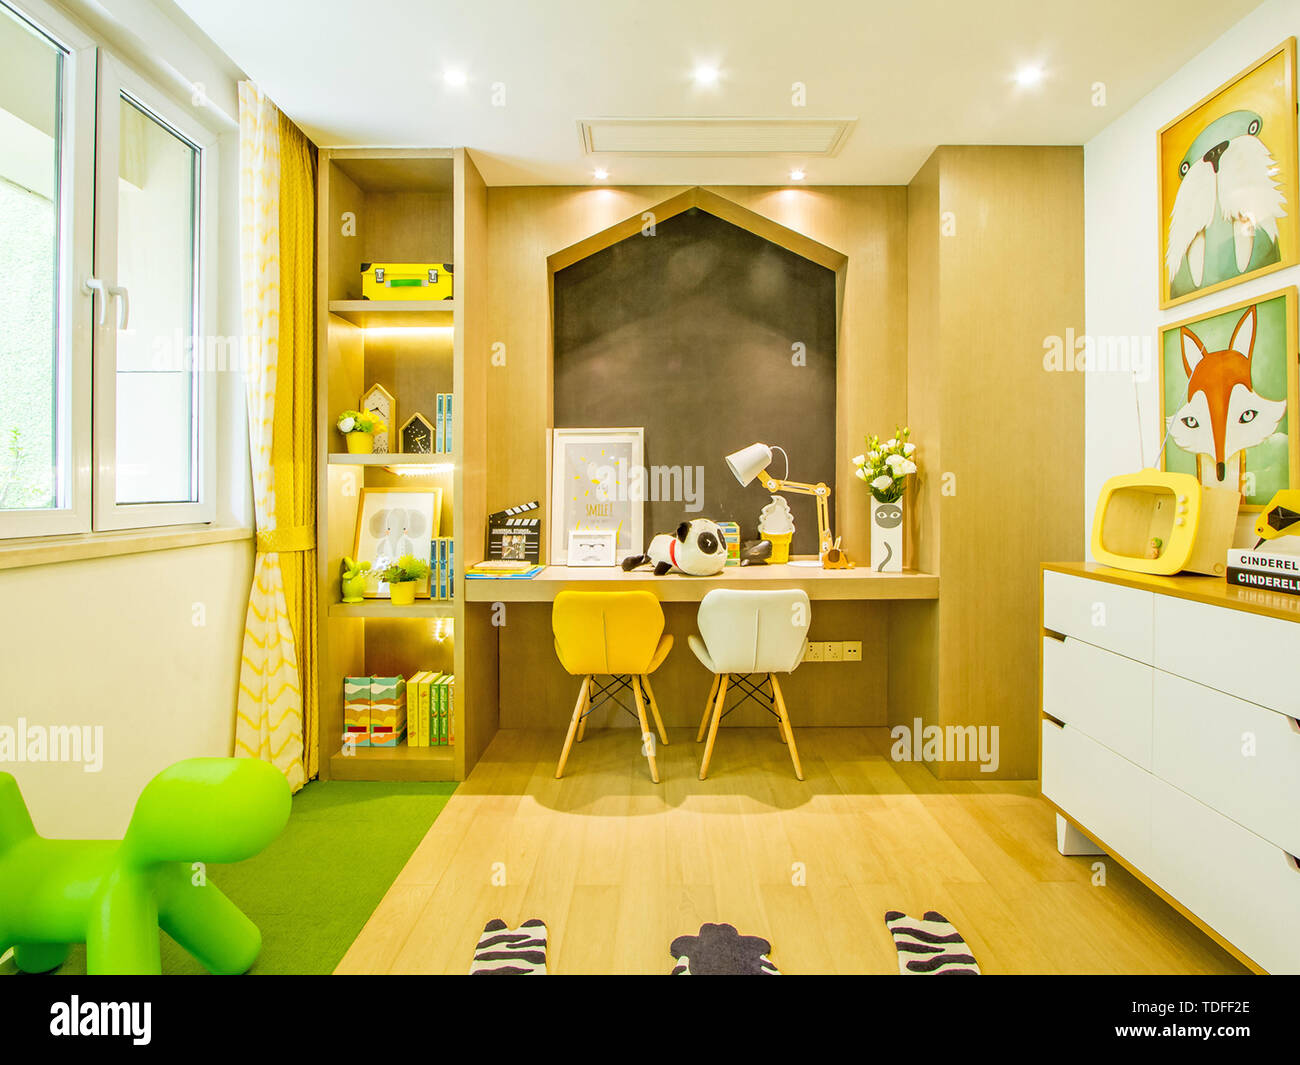 Study, bedroom, interior, interior design, decoration ...